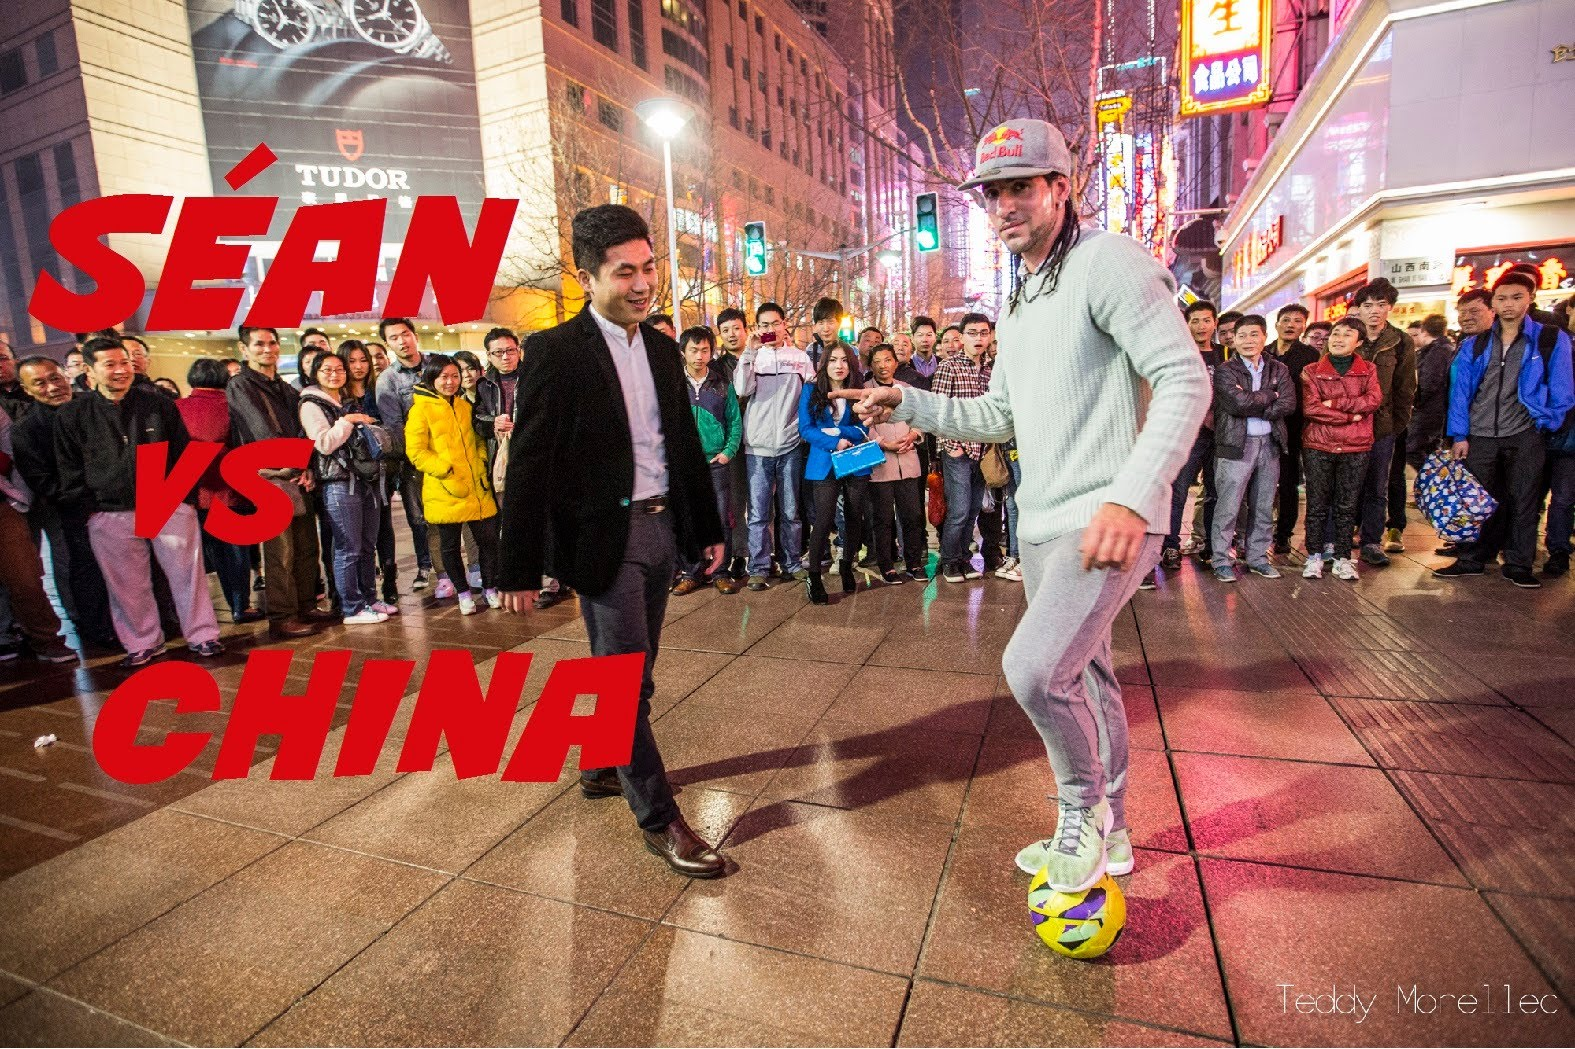 Séan Garnier vs China / @seanfreestyle vs china / #Séanvs